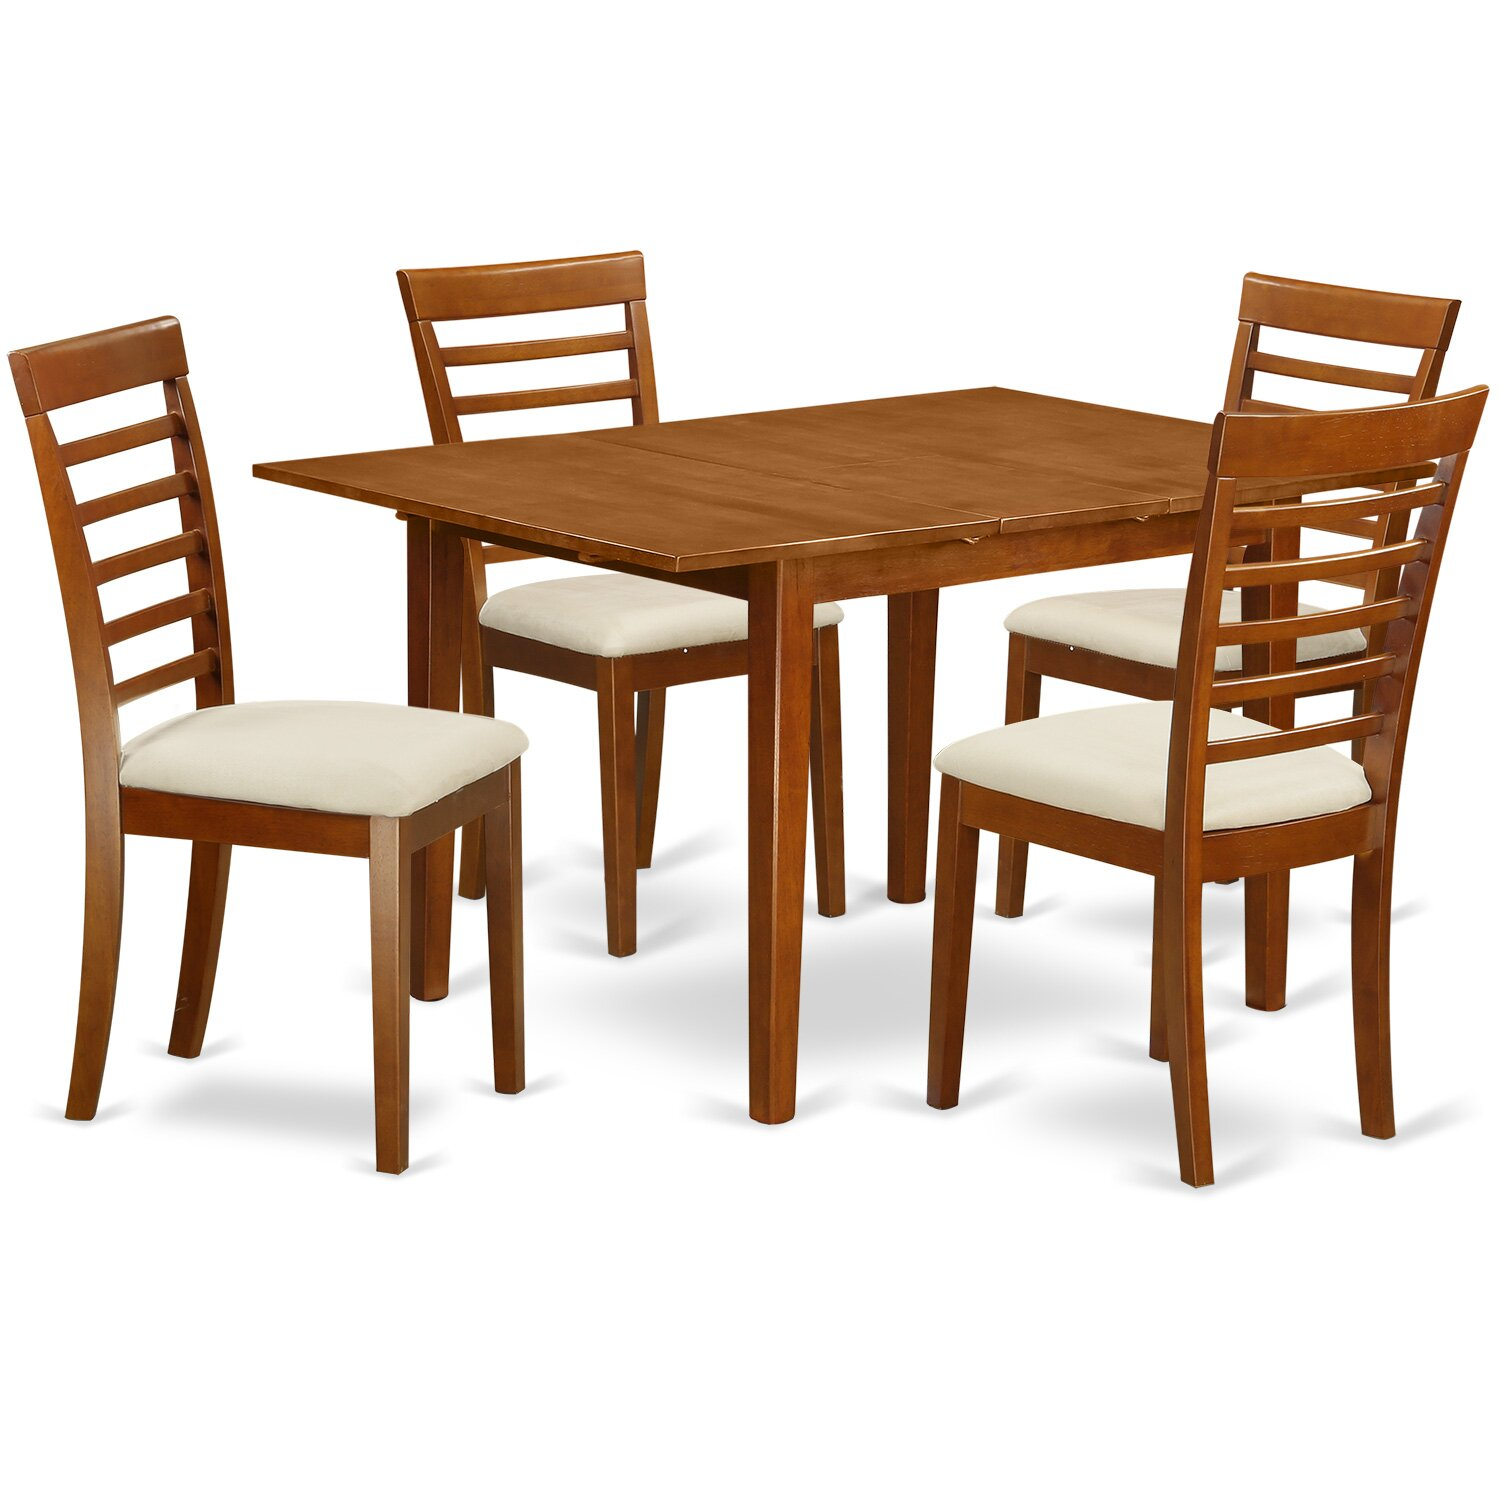 East west milan 5 piece dining set wayfair for Small table and 4 chair set